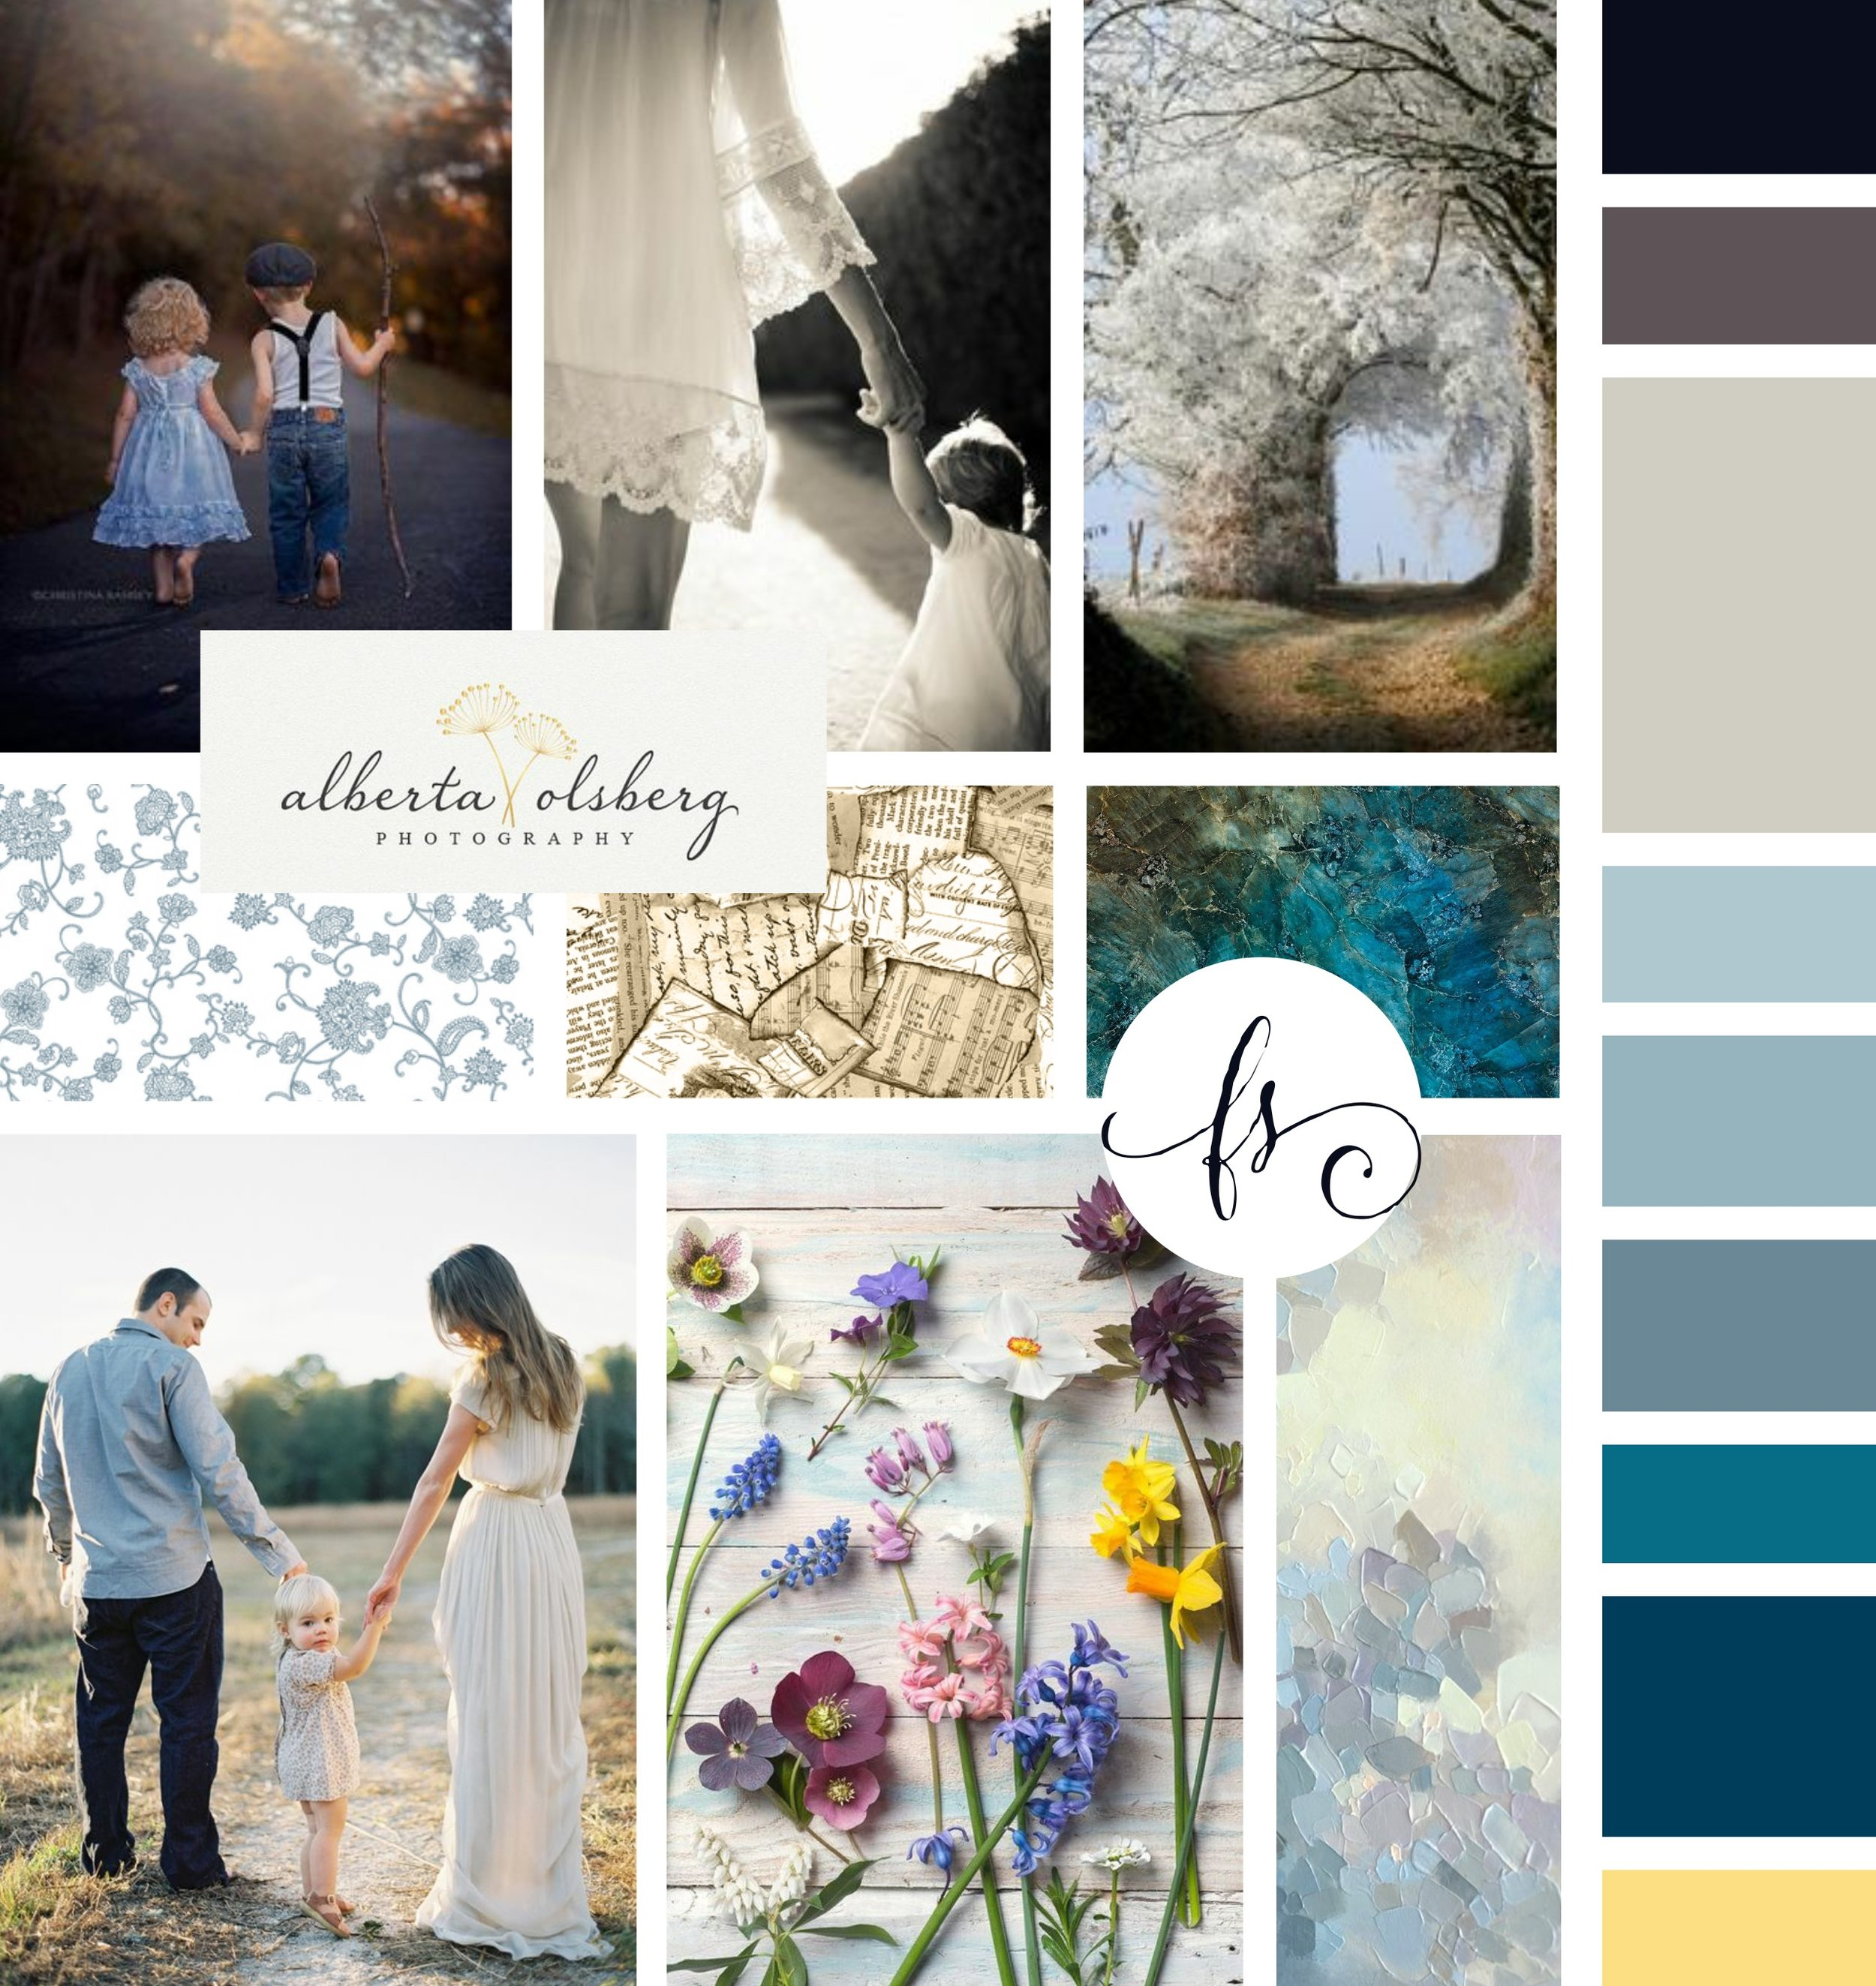 Sue Riley Photography Brand Inspiration Board by Tarragon Studios